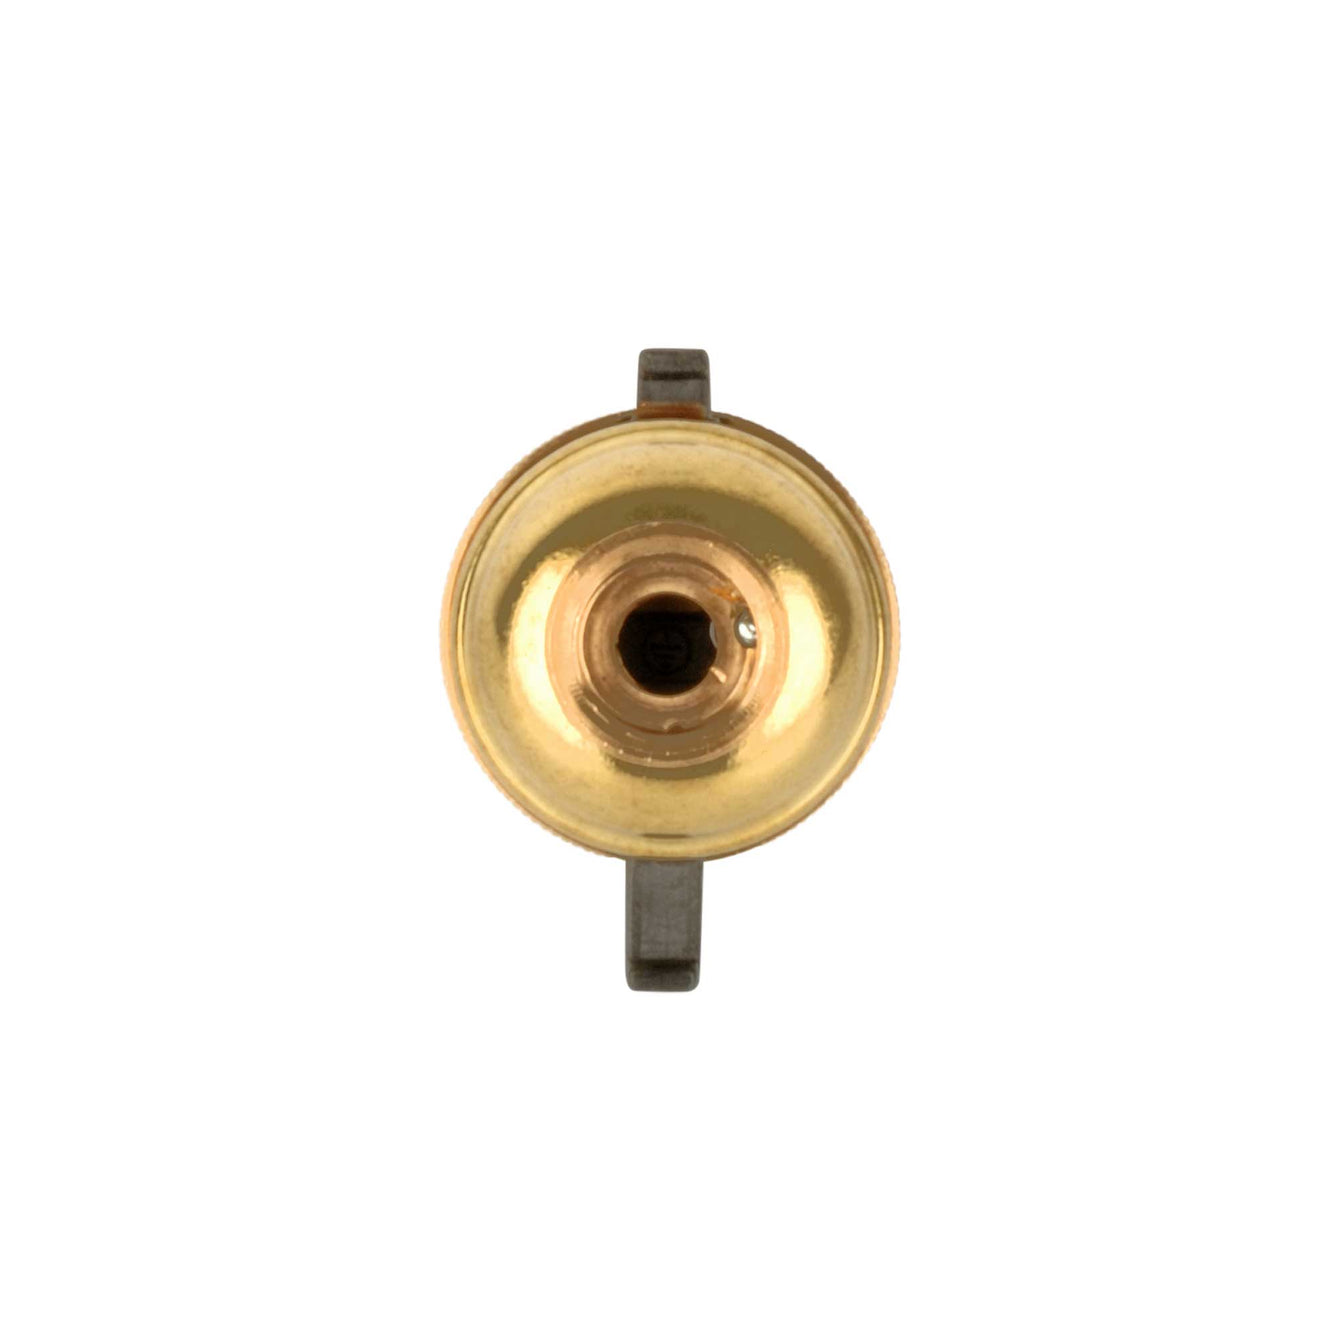 ElekTek Safety Switch Lamp Holder Bayonet Cap B22 10mm or Half Inch Entry With Shade Ring Solid Brass - Buy It Better Brushed Antique Brass / 10mm